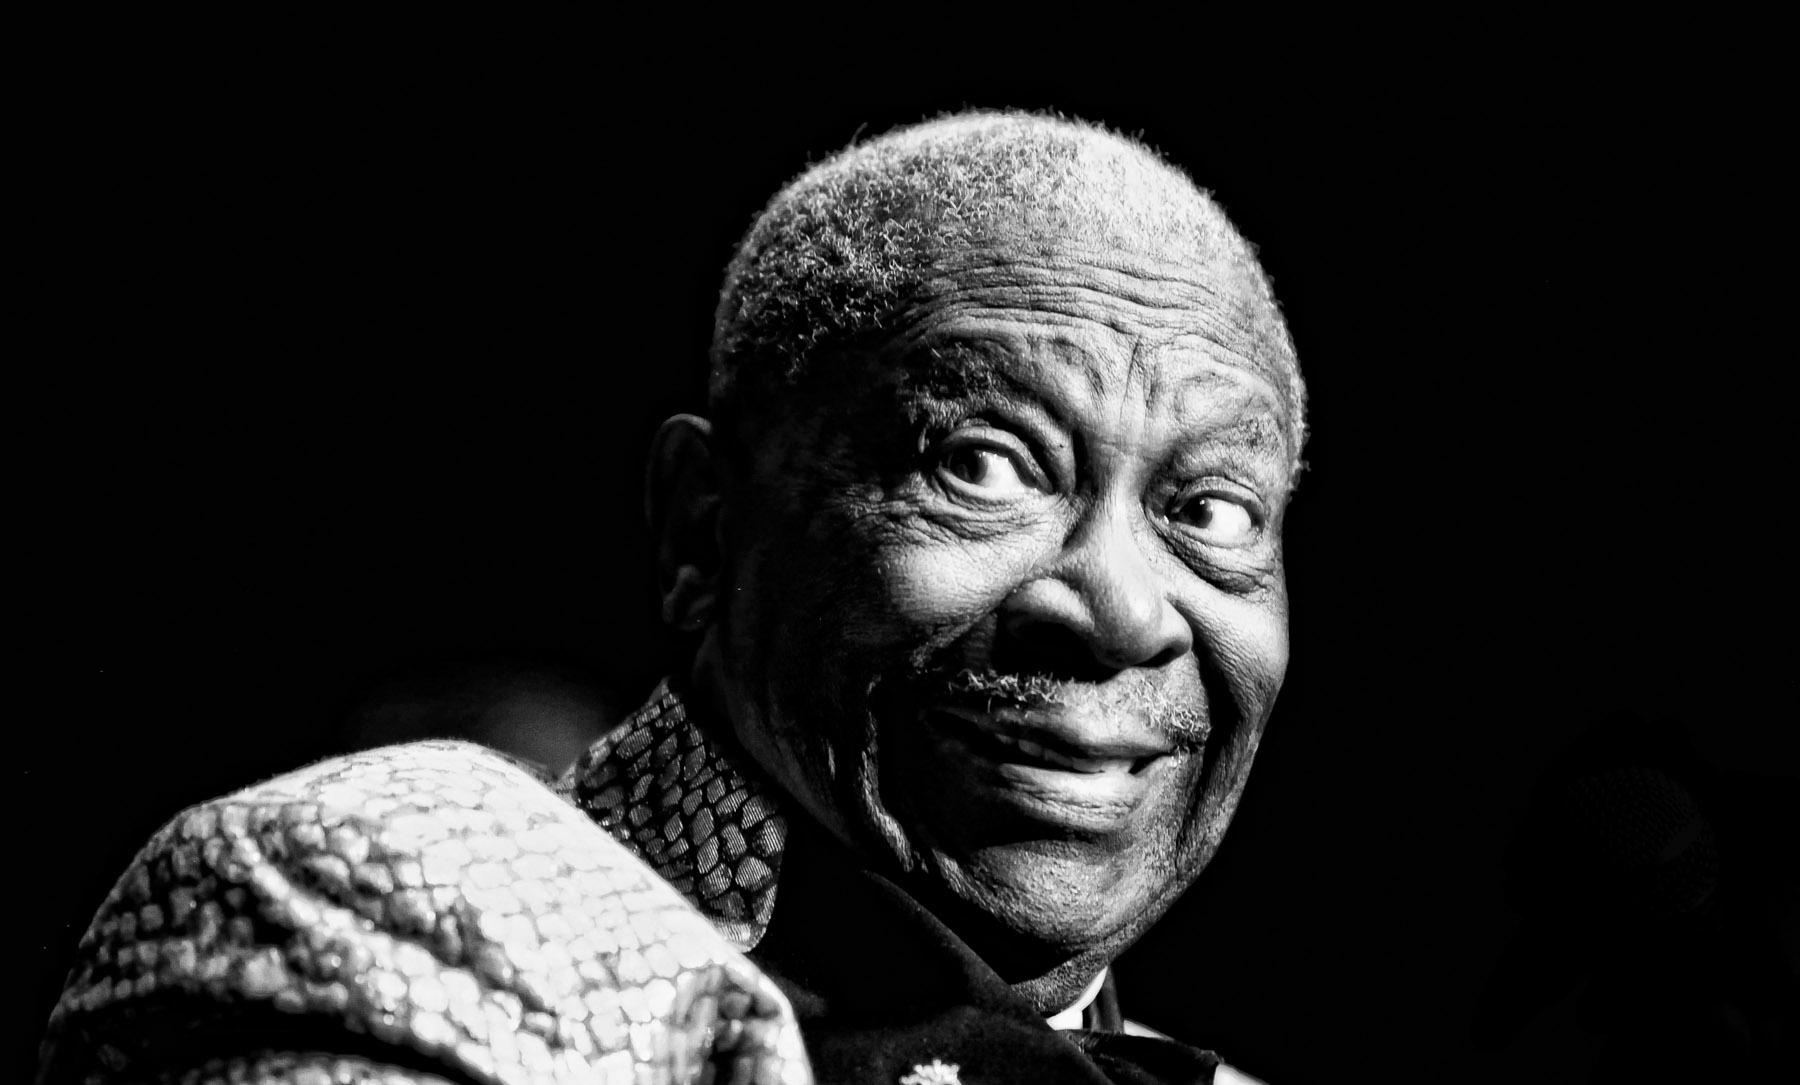 BB King at the Royal Albert Hall by Christie Goodwin